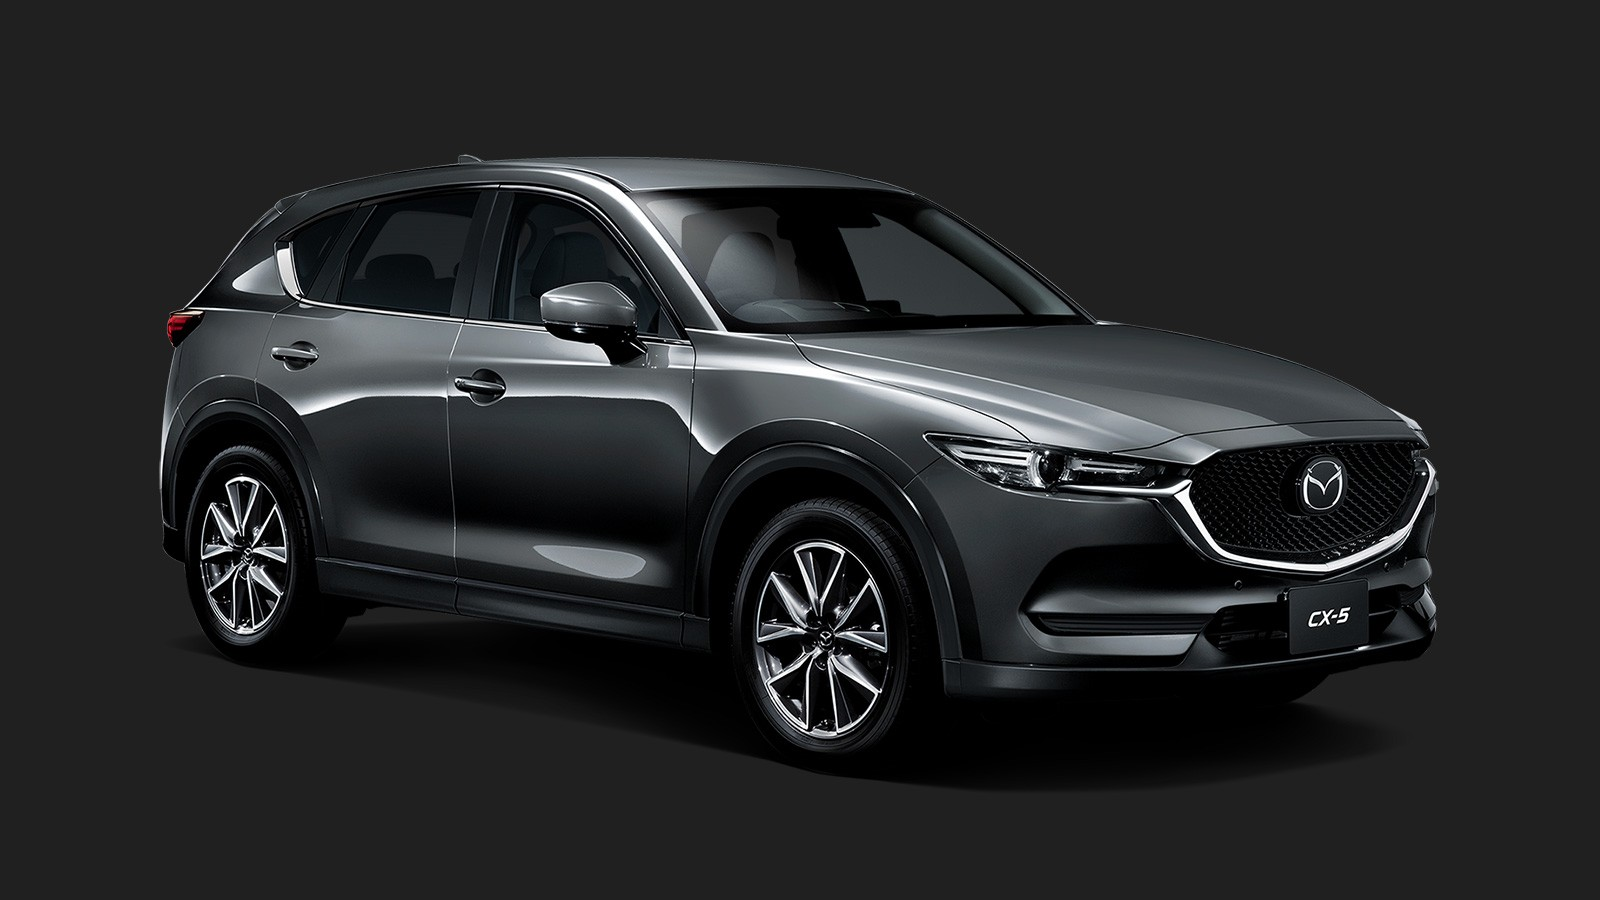 2017 Mazda CX-5 Specifications and Prices Revealed for ...